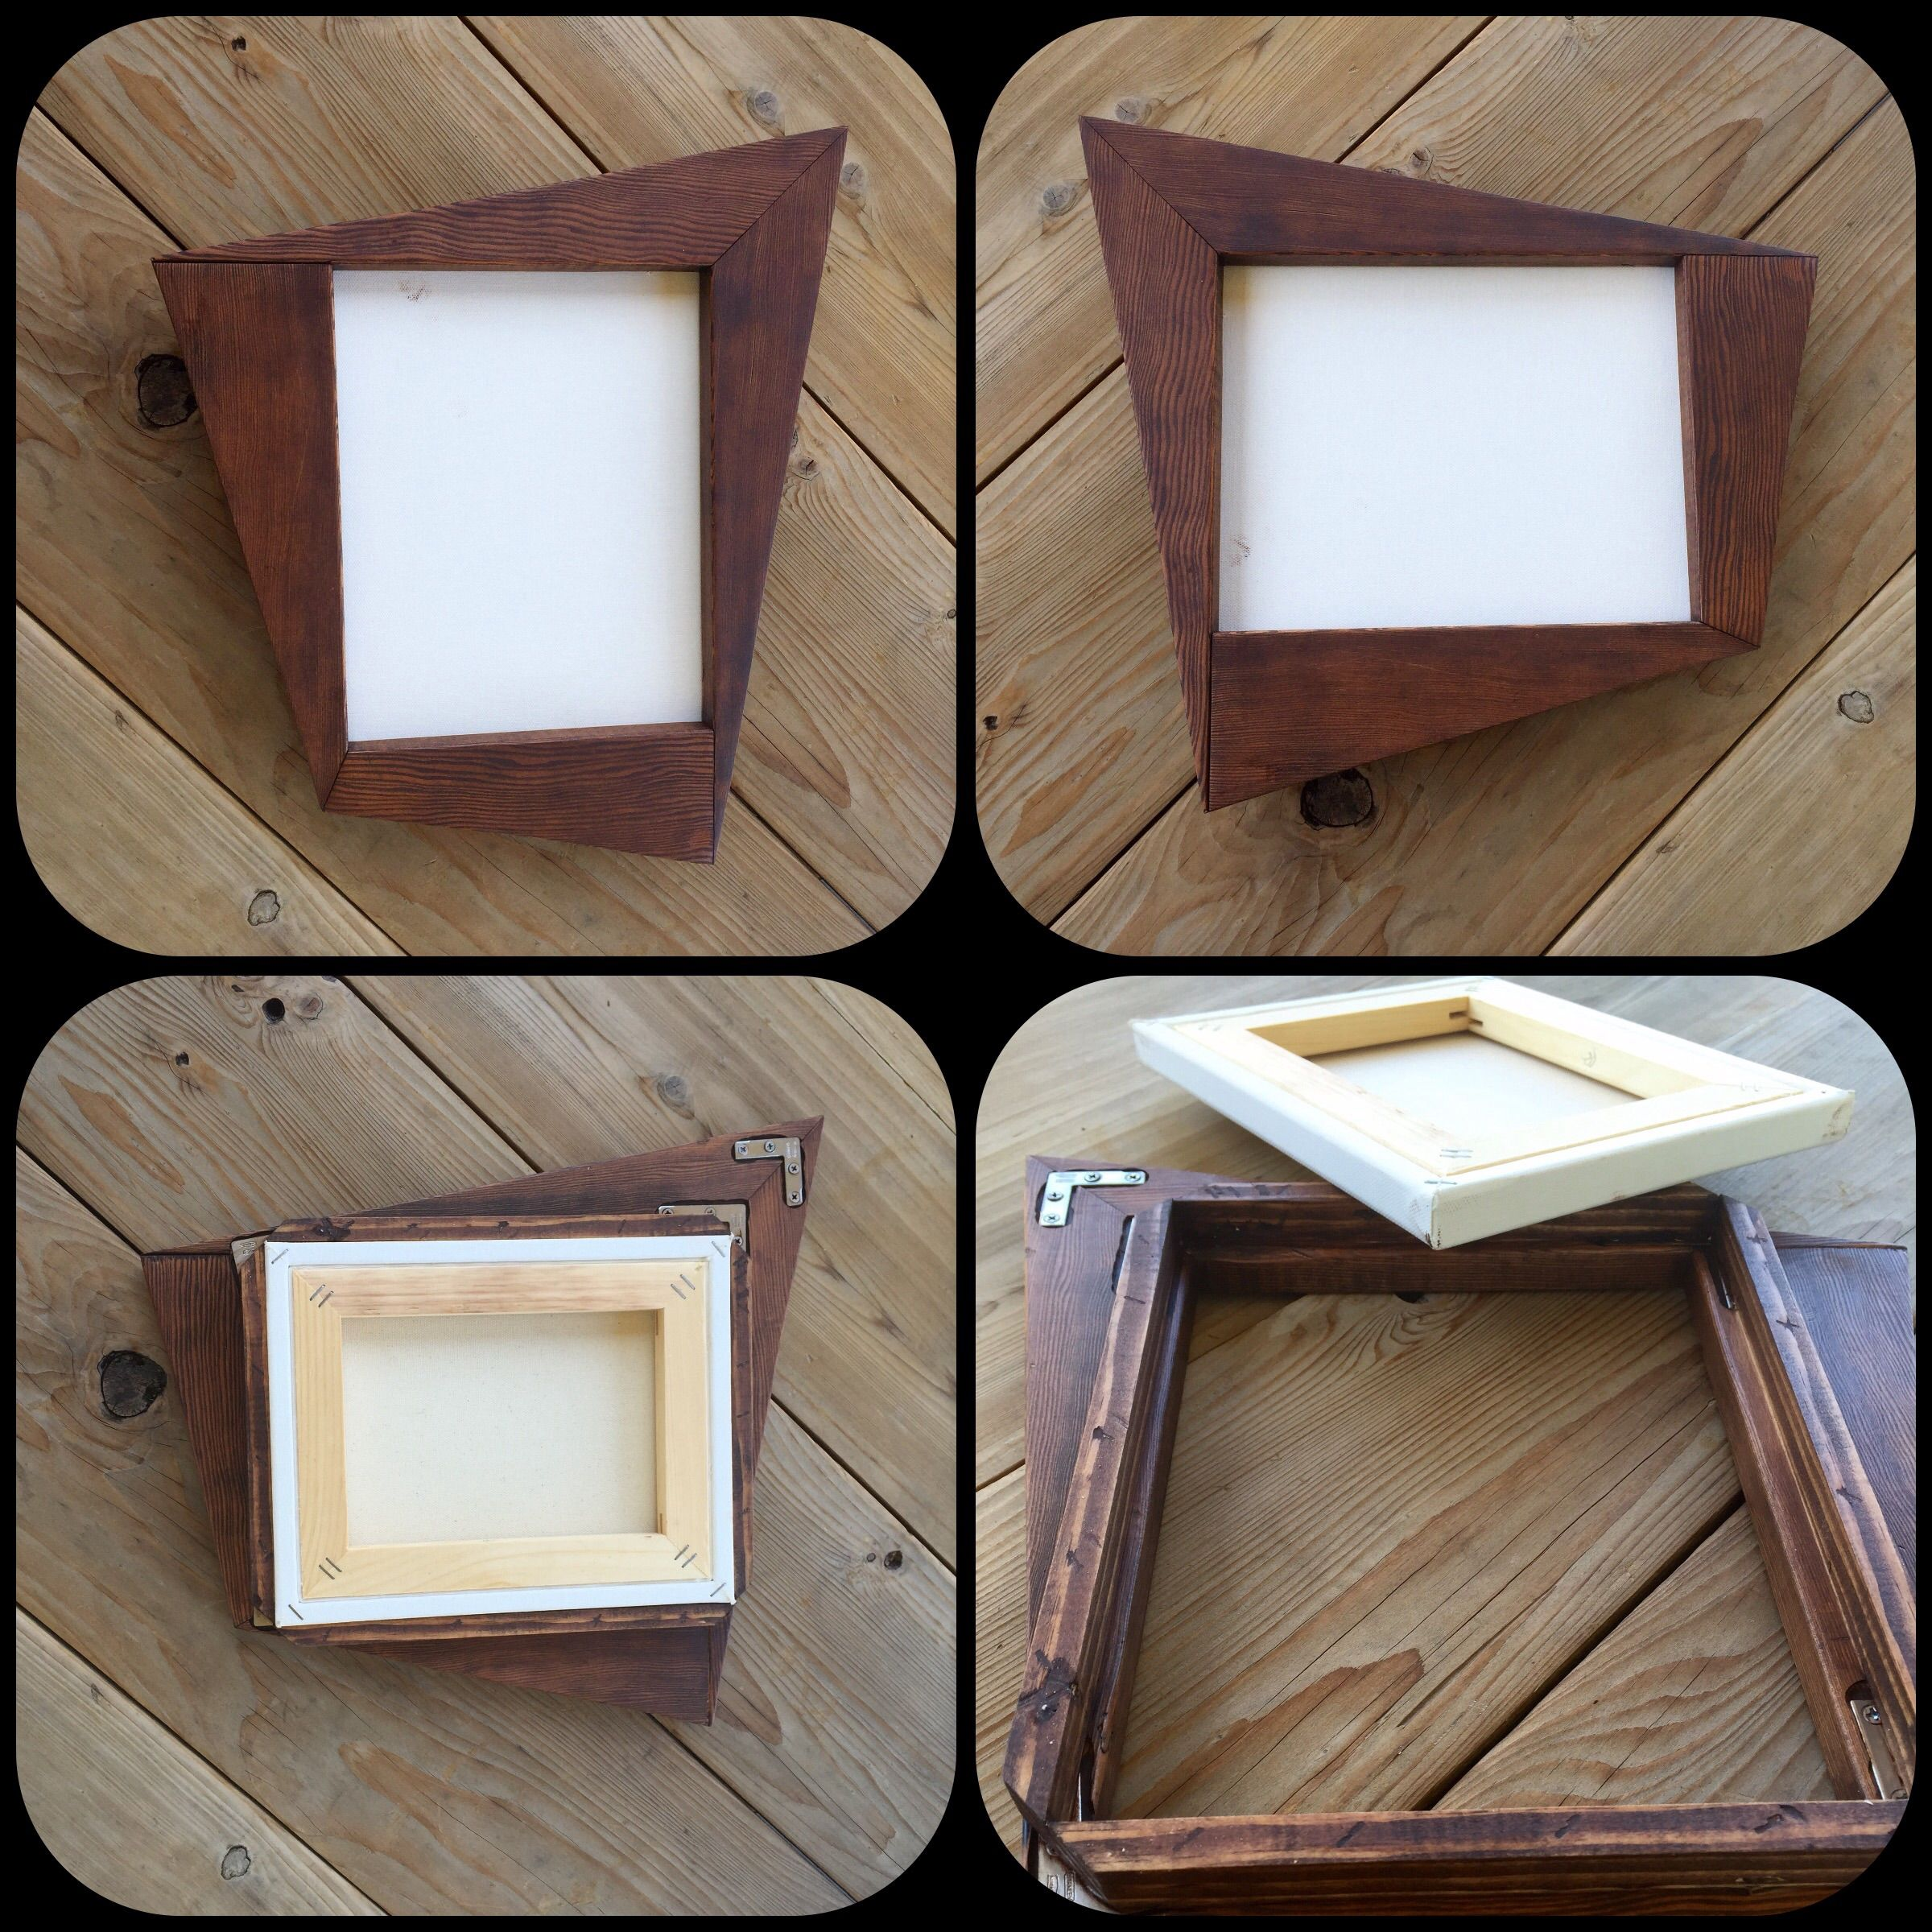 custom made retro style funky wood frame for canvas art or mirror